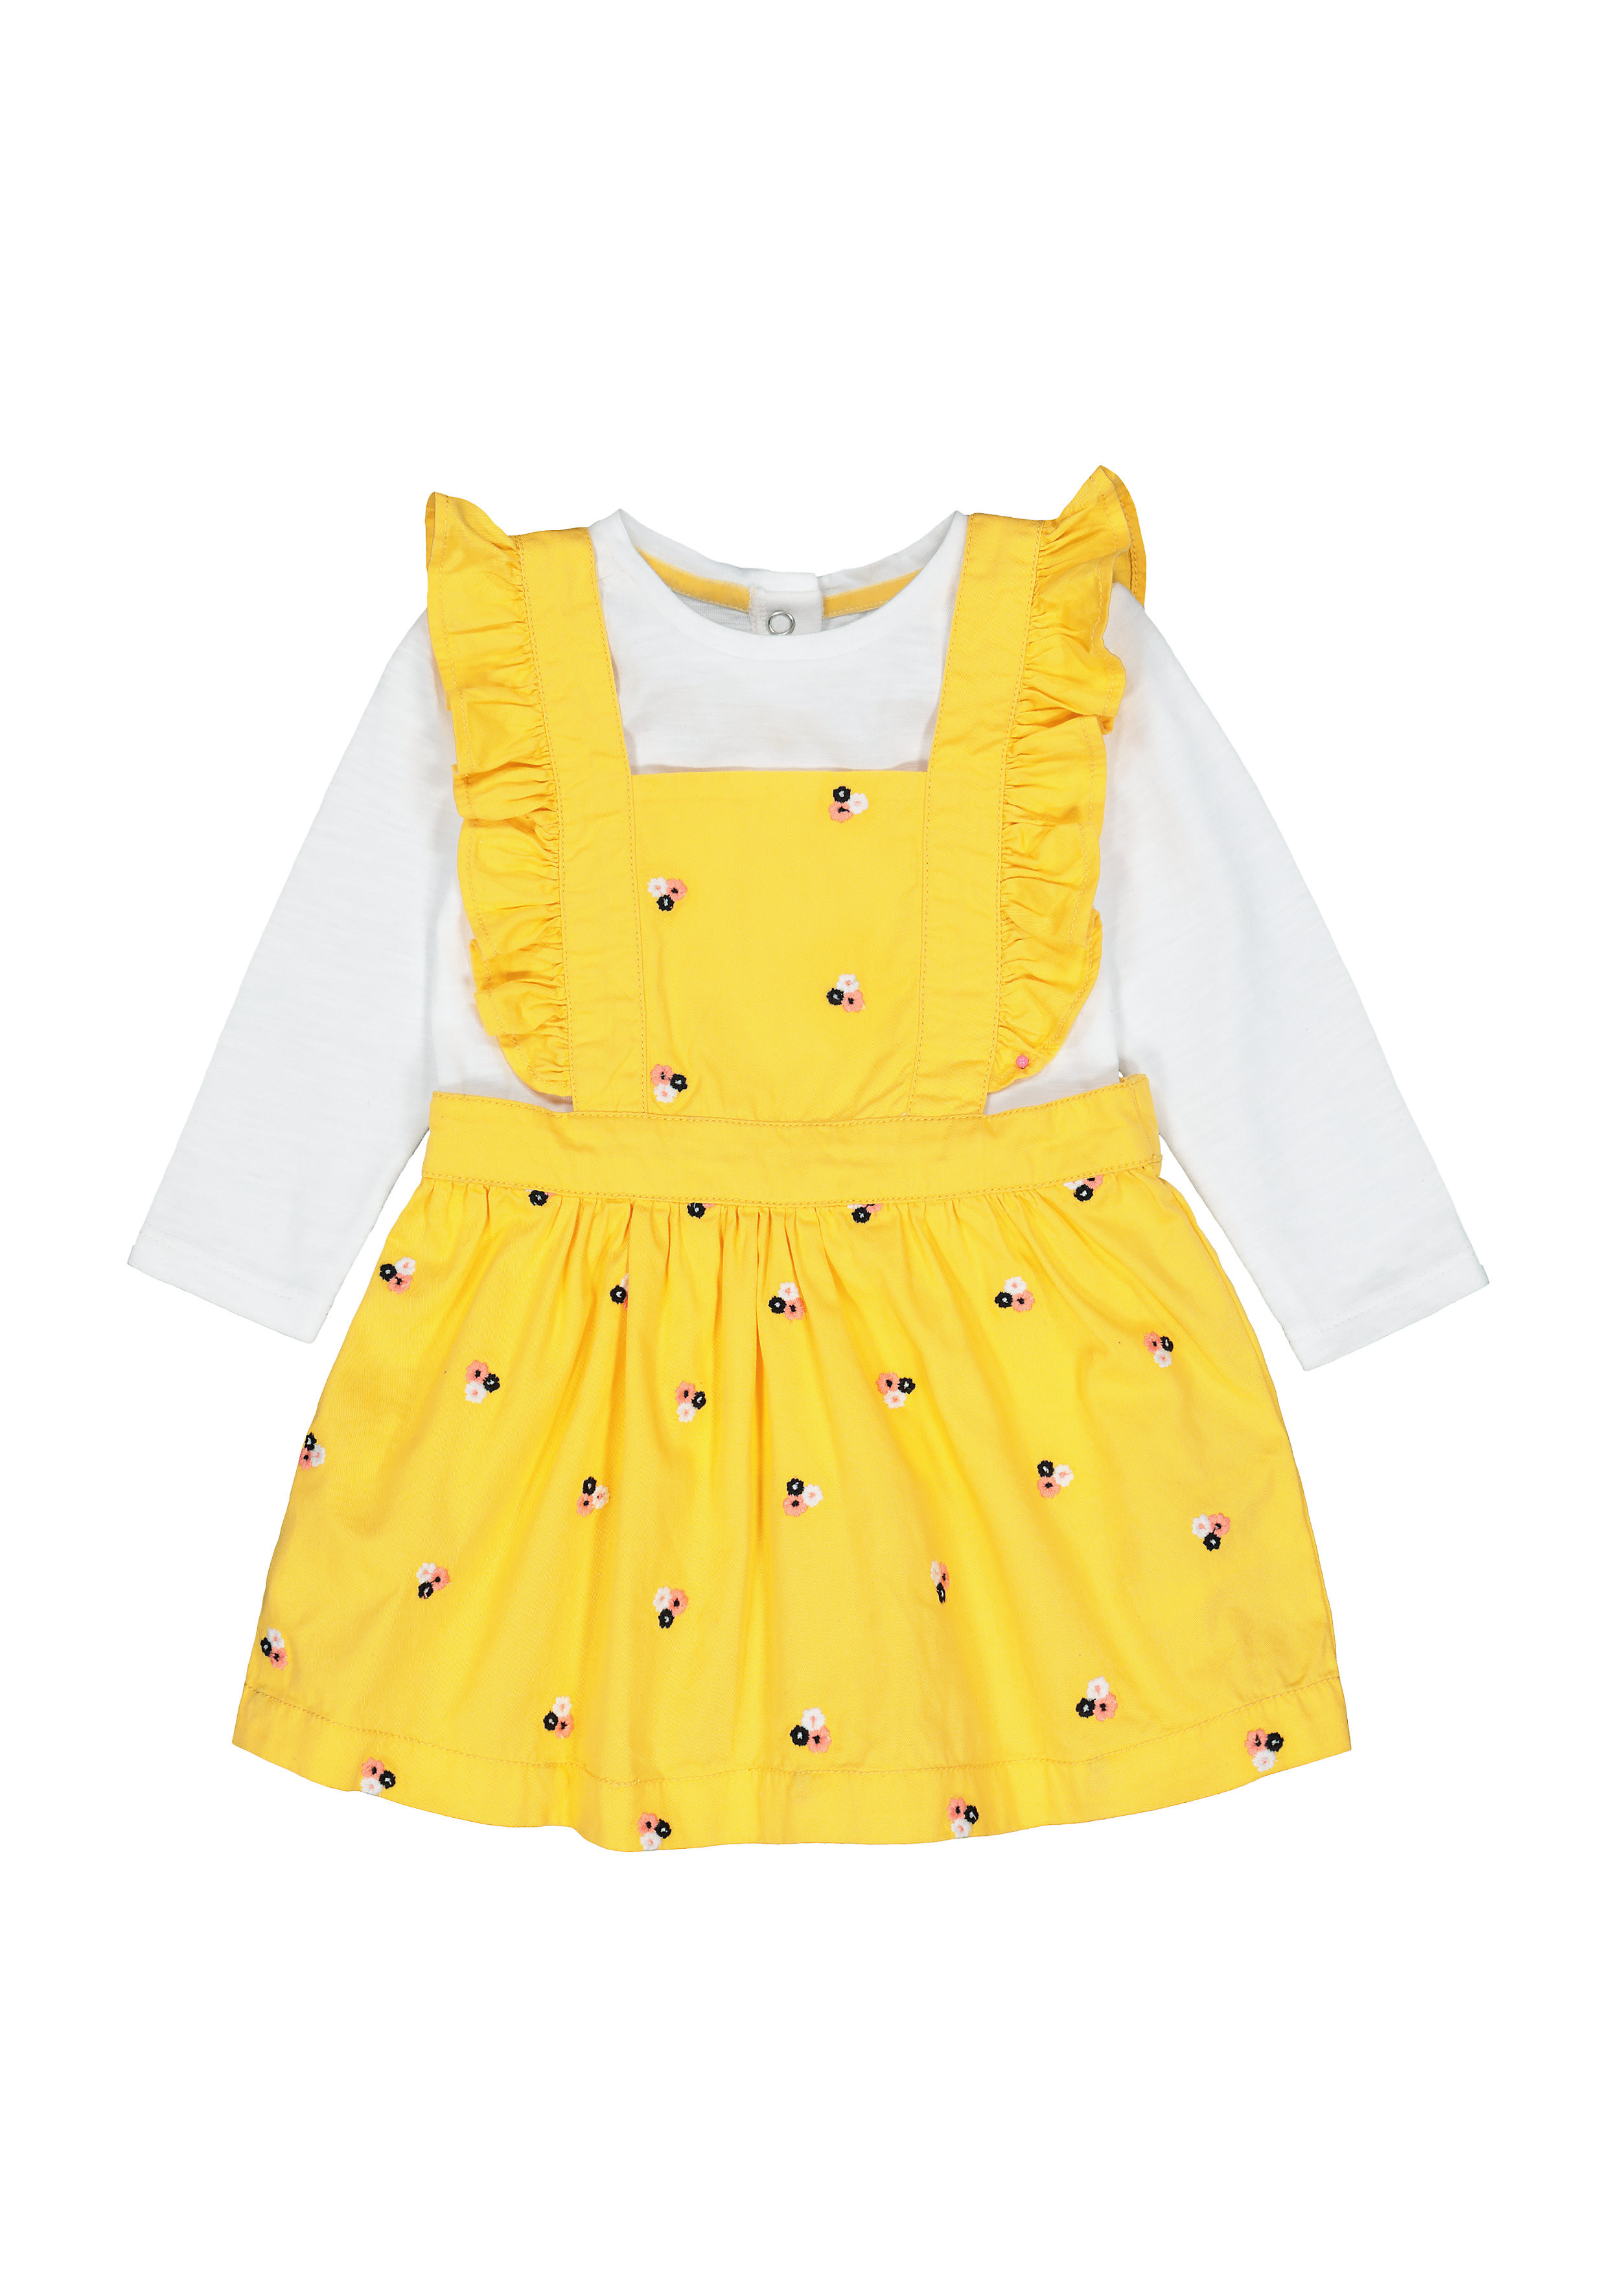 Mothercare | Girls Full Sleeves Dress & Tee Set Floral Embroidery - Mustard